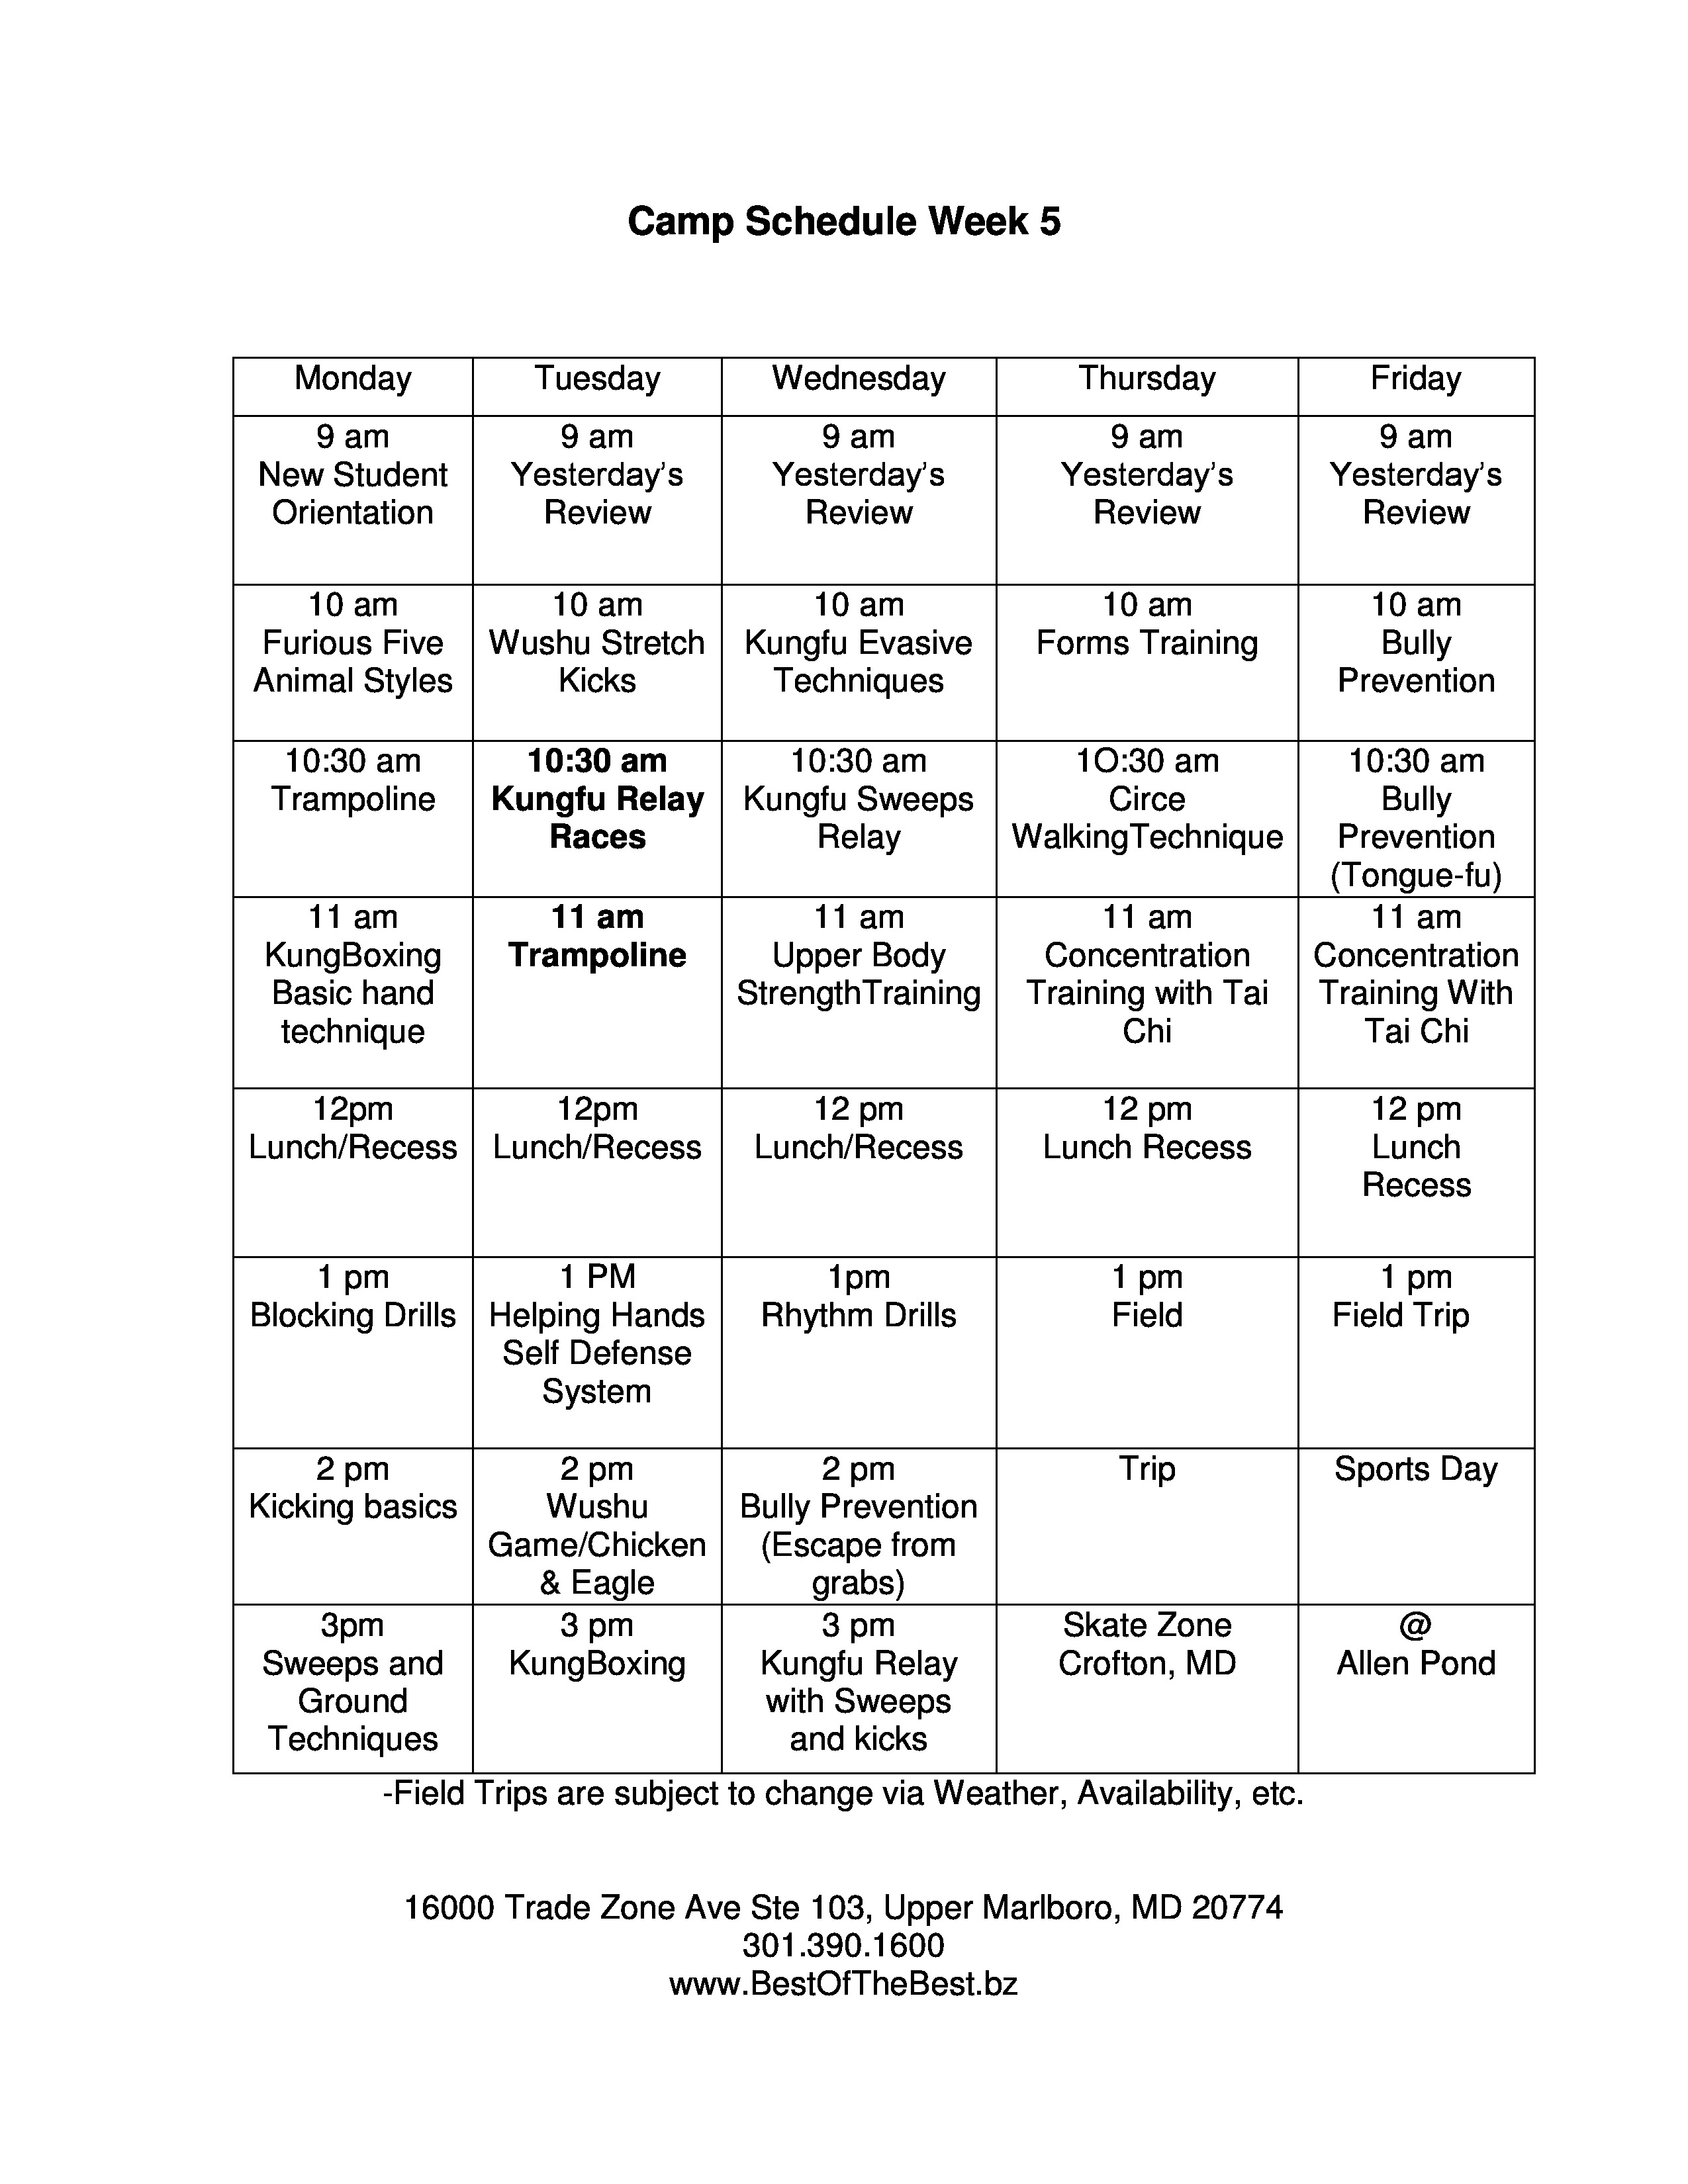 View A Sample Of Our Summer Camp Daily Schedule Below